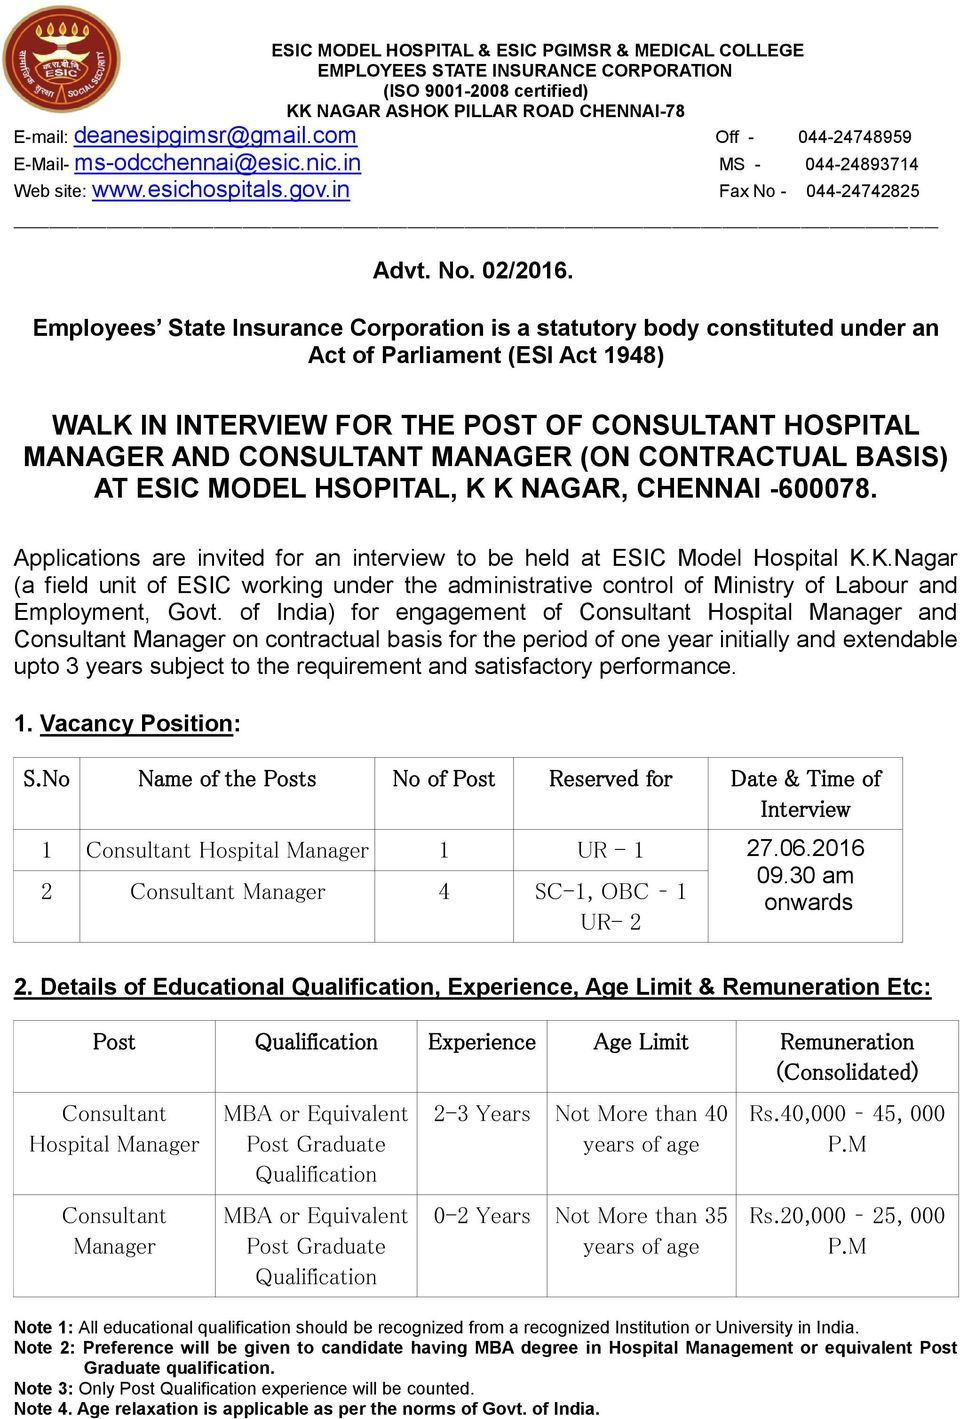 Employees State Insurance Corporation is a statutory body constituted under an Act of Parliament (ESI Act 1948) WALK IN INTERVIEW FOR THE POST OF CONSULTANT HOSPITAL MANAGER AND CONSULTANT MANAGER